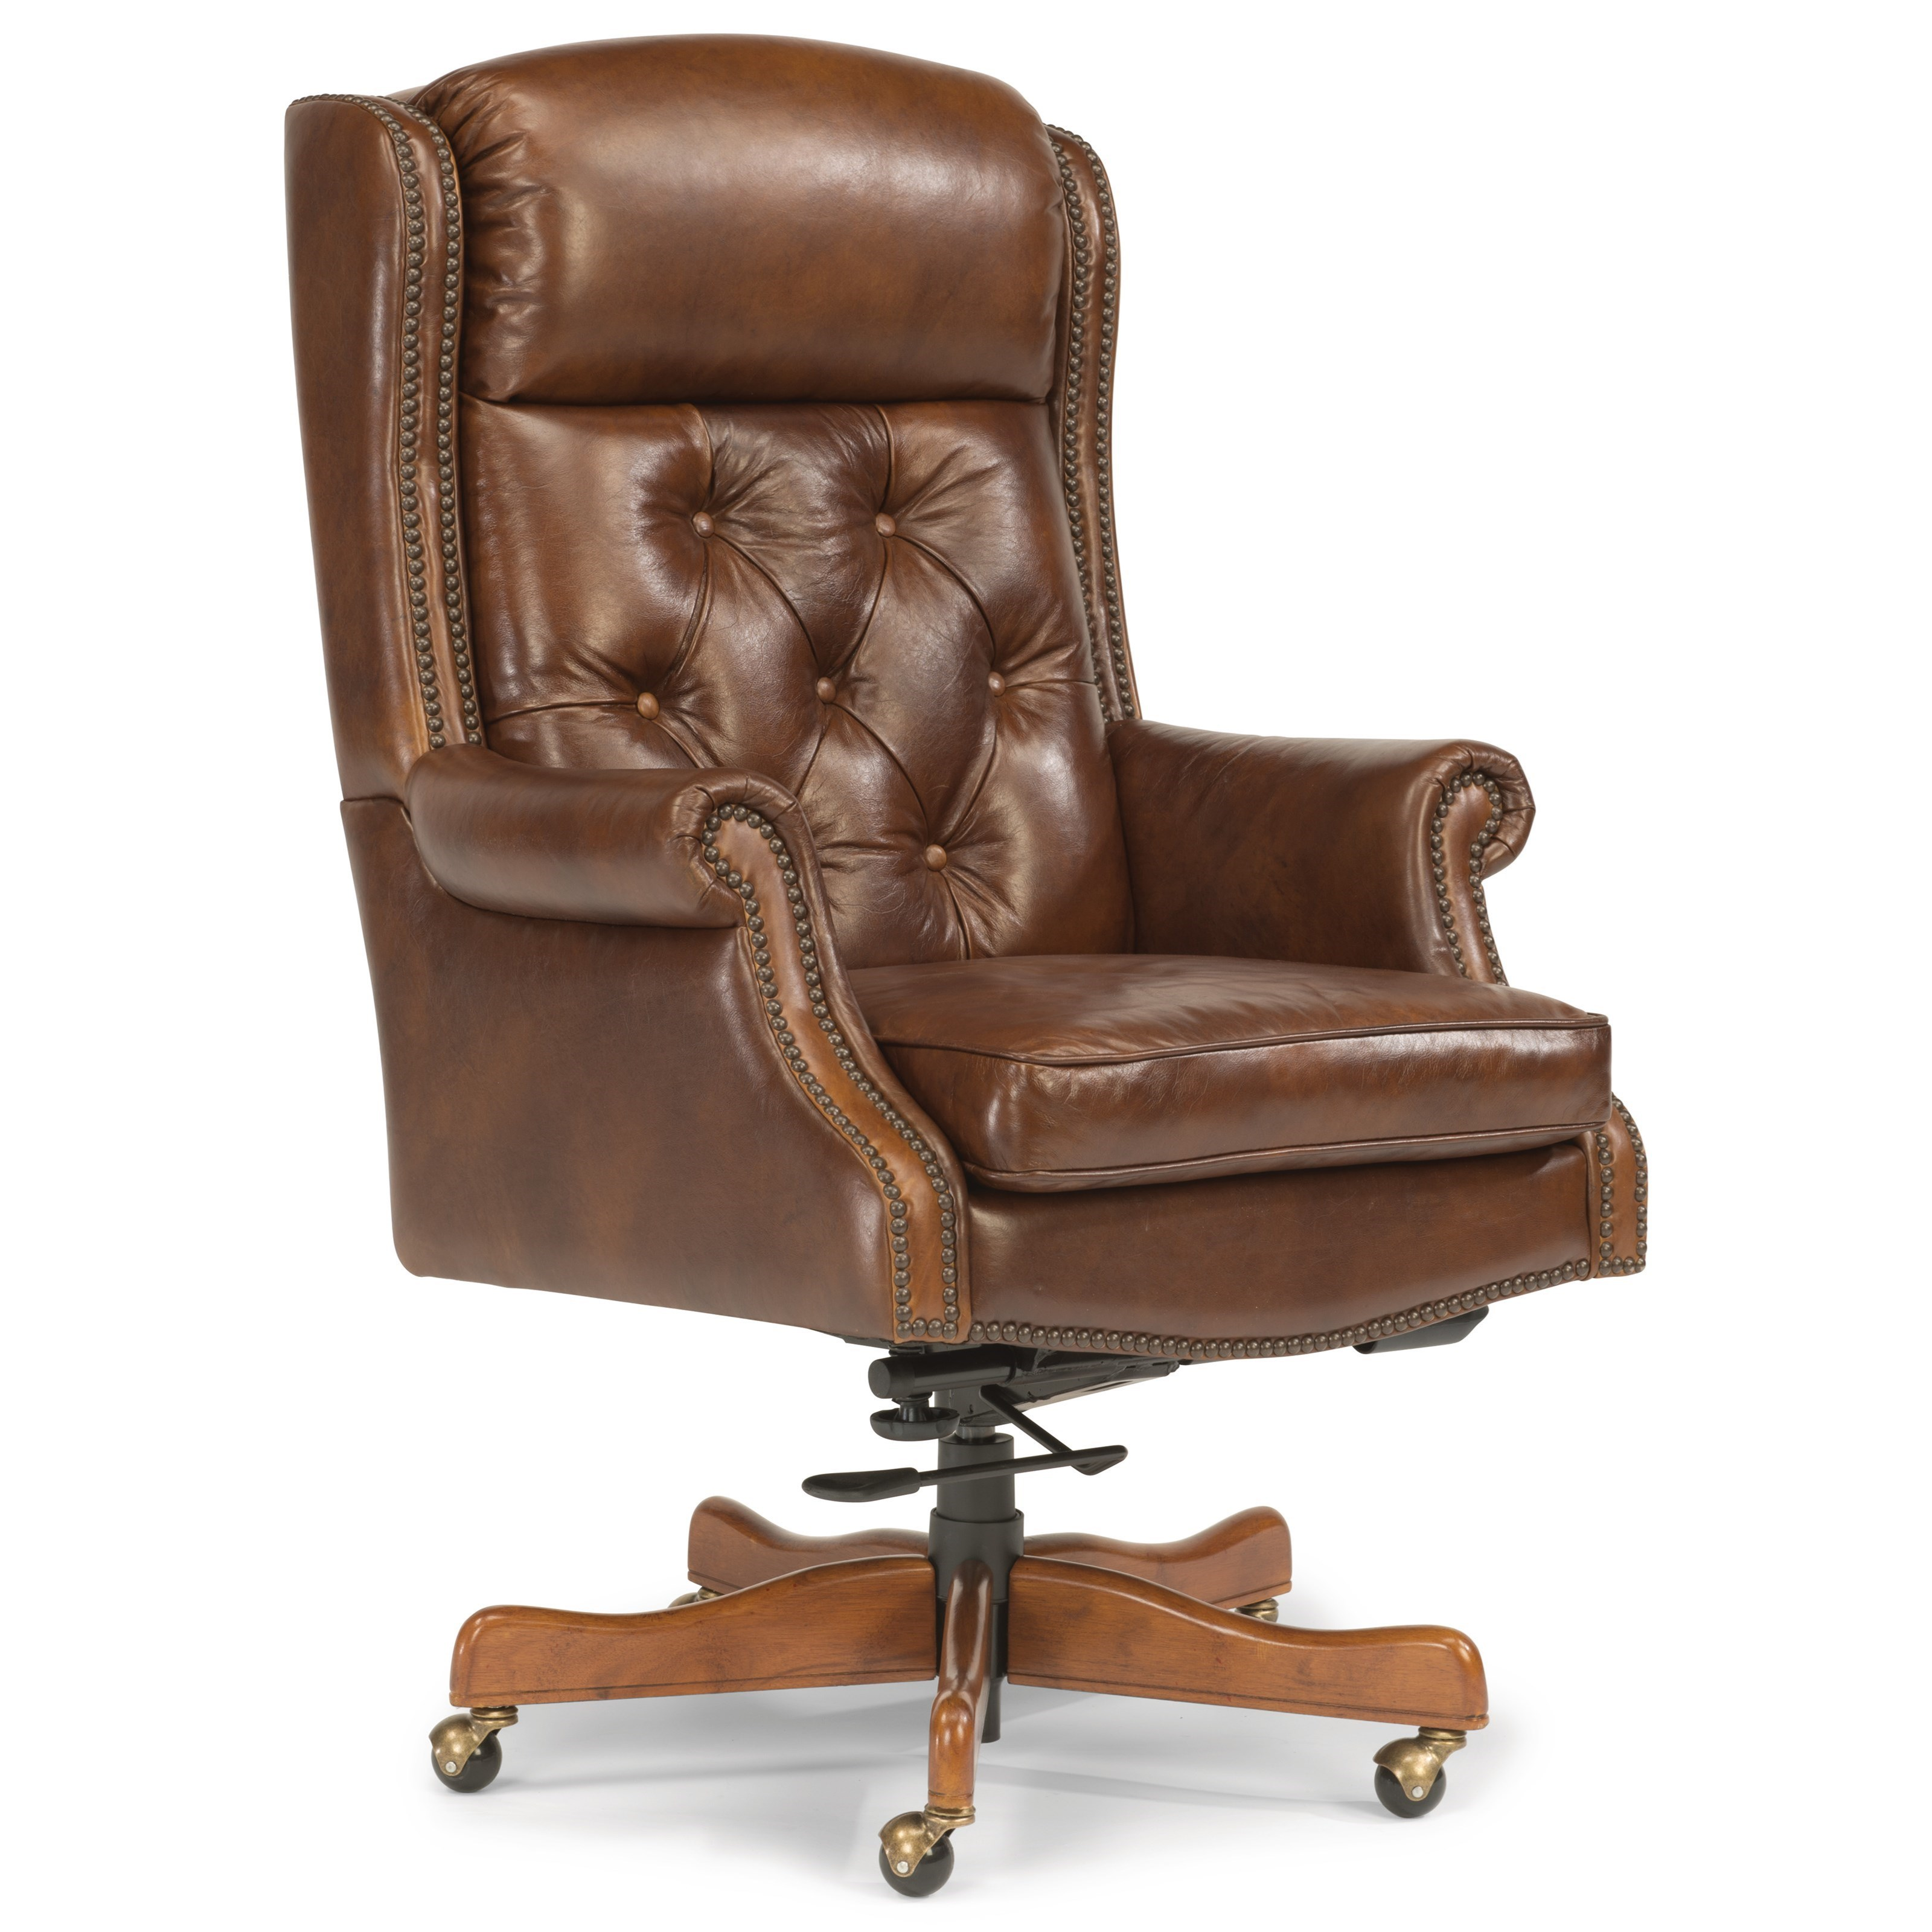 Flexsteel Wynwood Collection fice Chairs Traditional fice